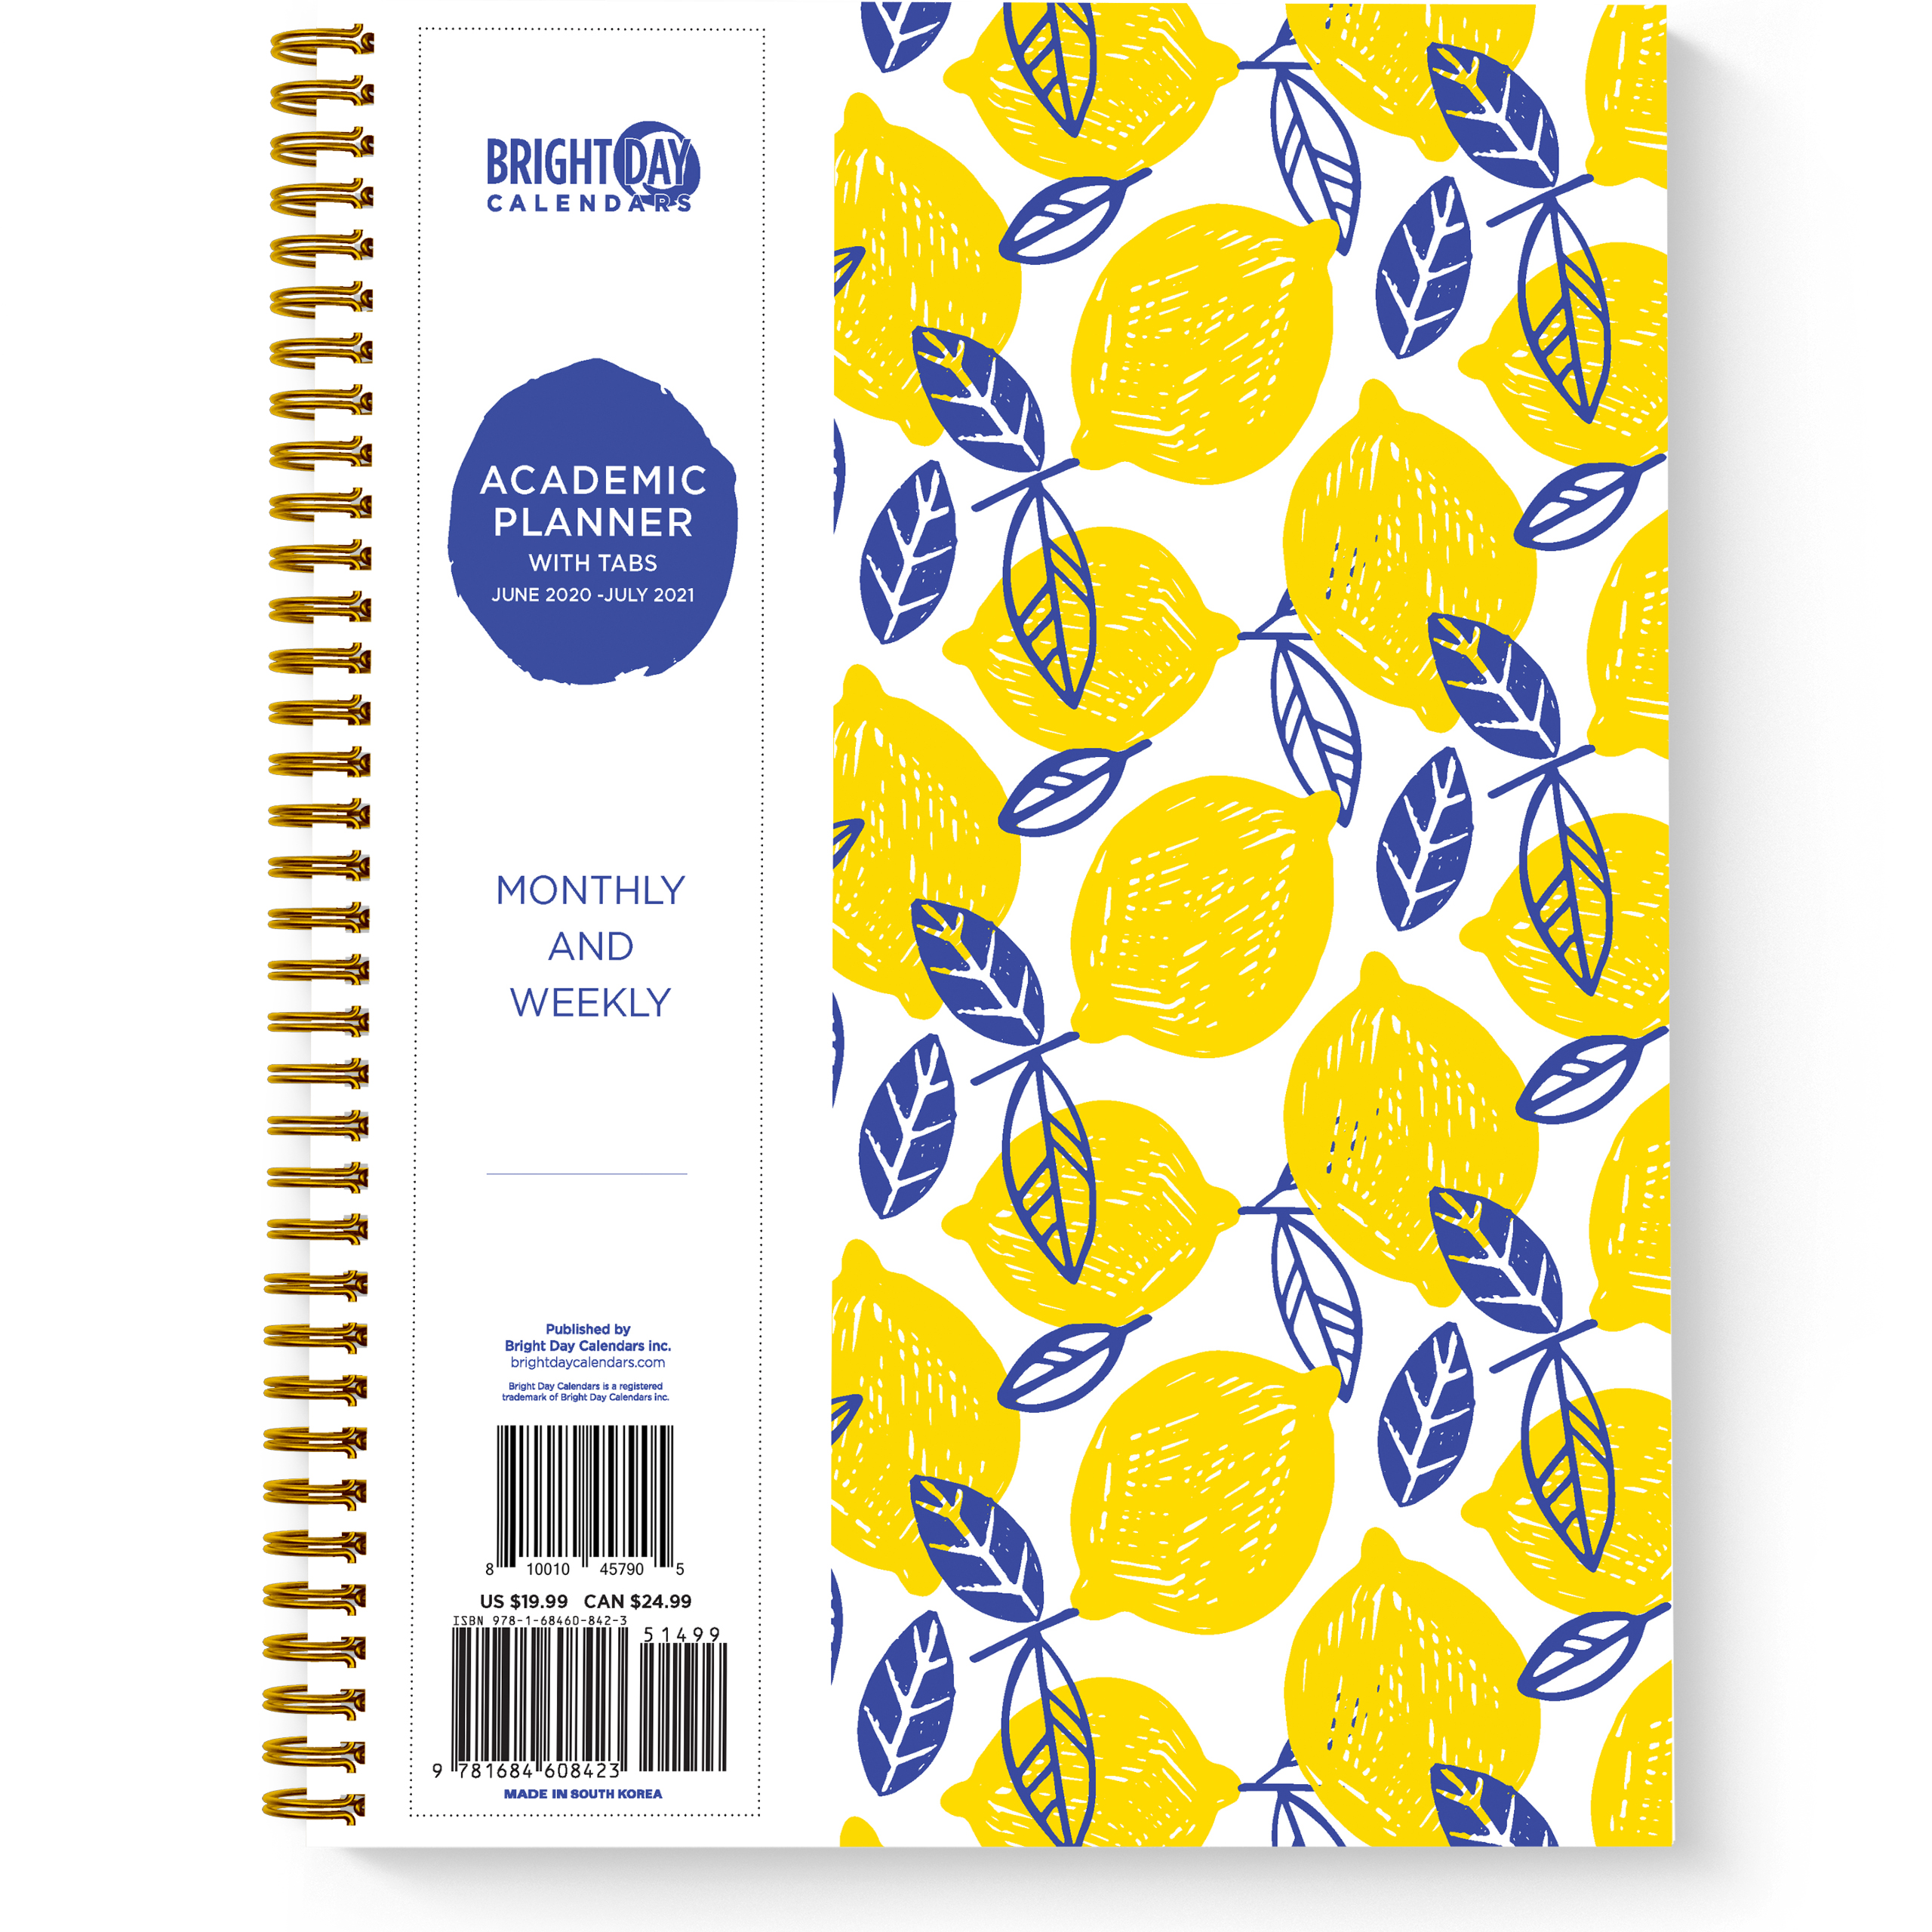 Planner Lemons Yearly Monthly Weekly Daily Calendar Organizer-Bright Day